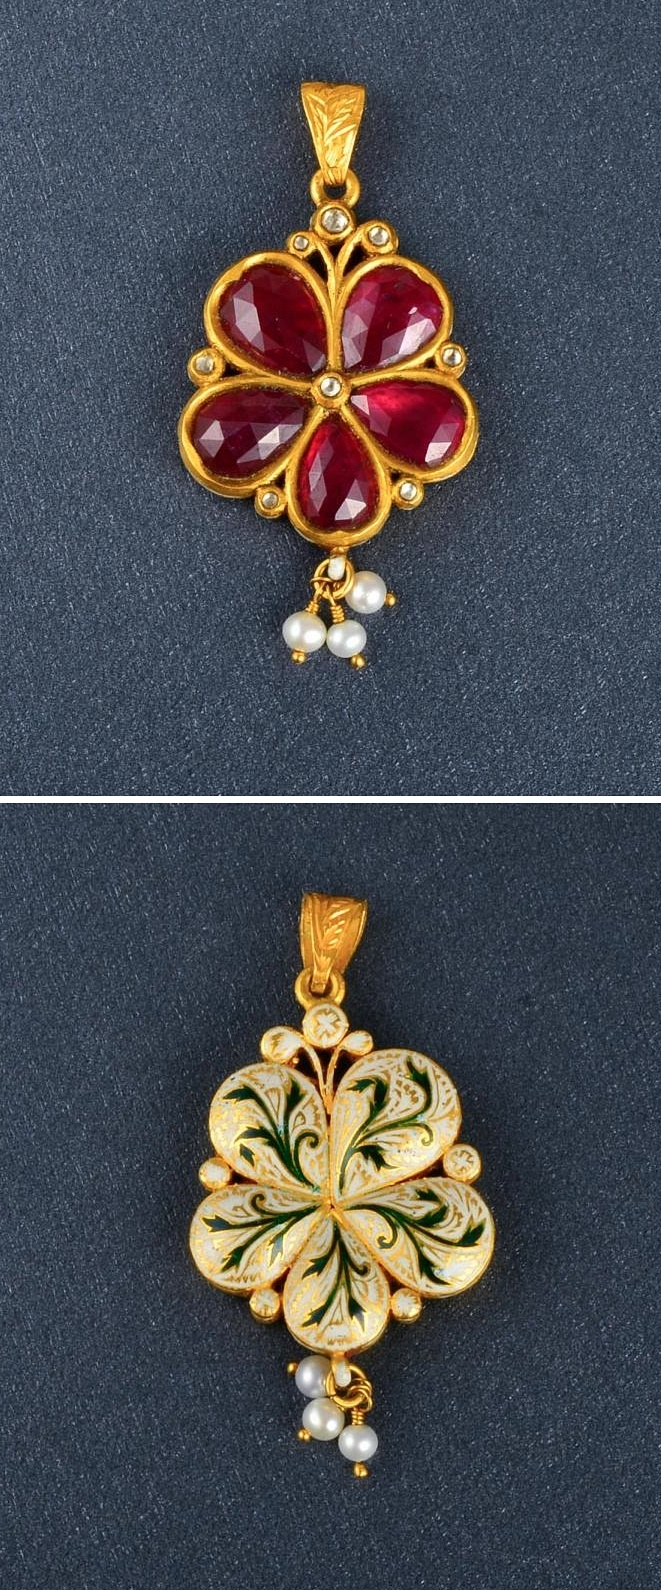 "An Indian ruby and diamond flower pendant featuring 5 pear shaped, facet cut rubies weighing approx. 2CT for flower petals. The flower is adorned with 8 small rose cut diamonds and 3 small pearls. The back is painted with white and green filigree enamel design. The pendant measures 2"" in length and weighs 6.5DWT."